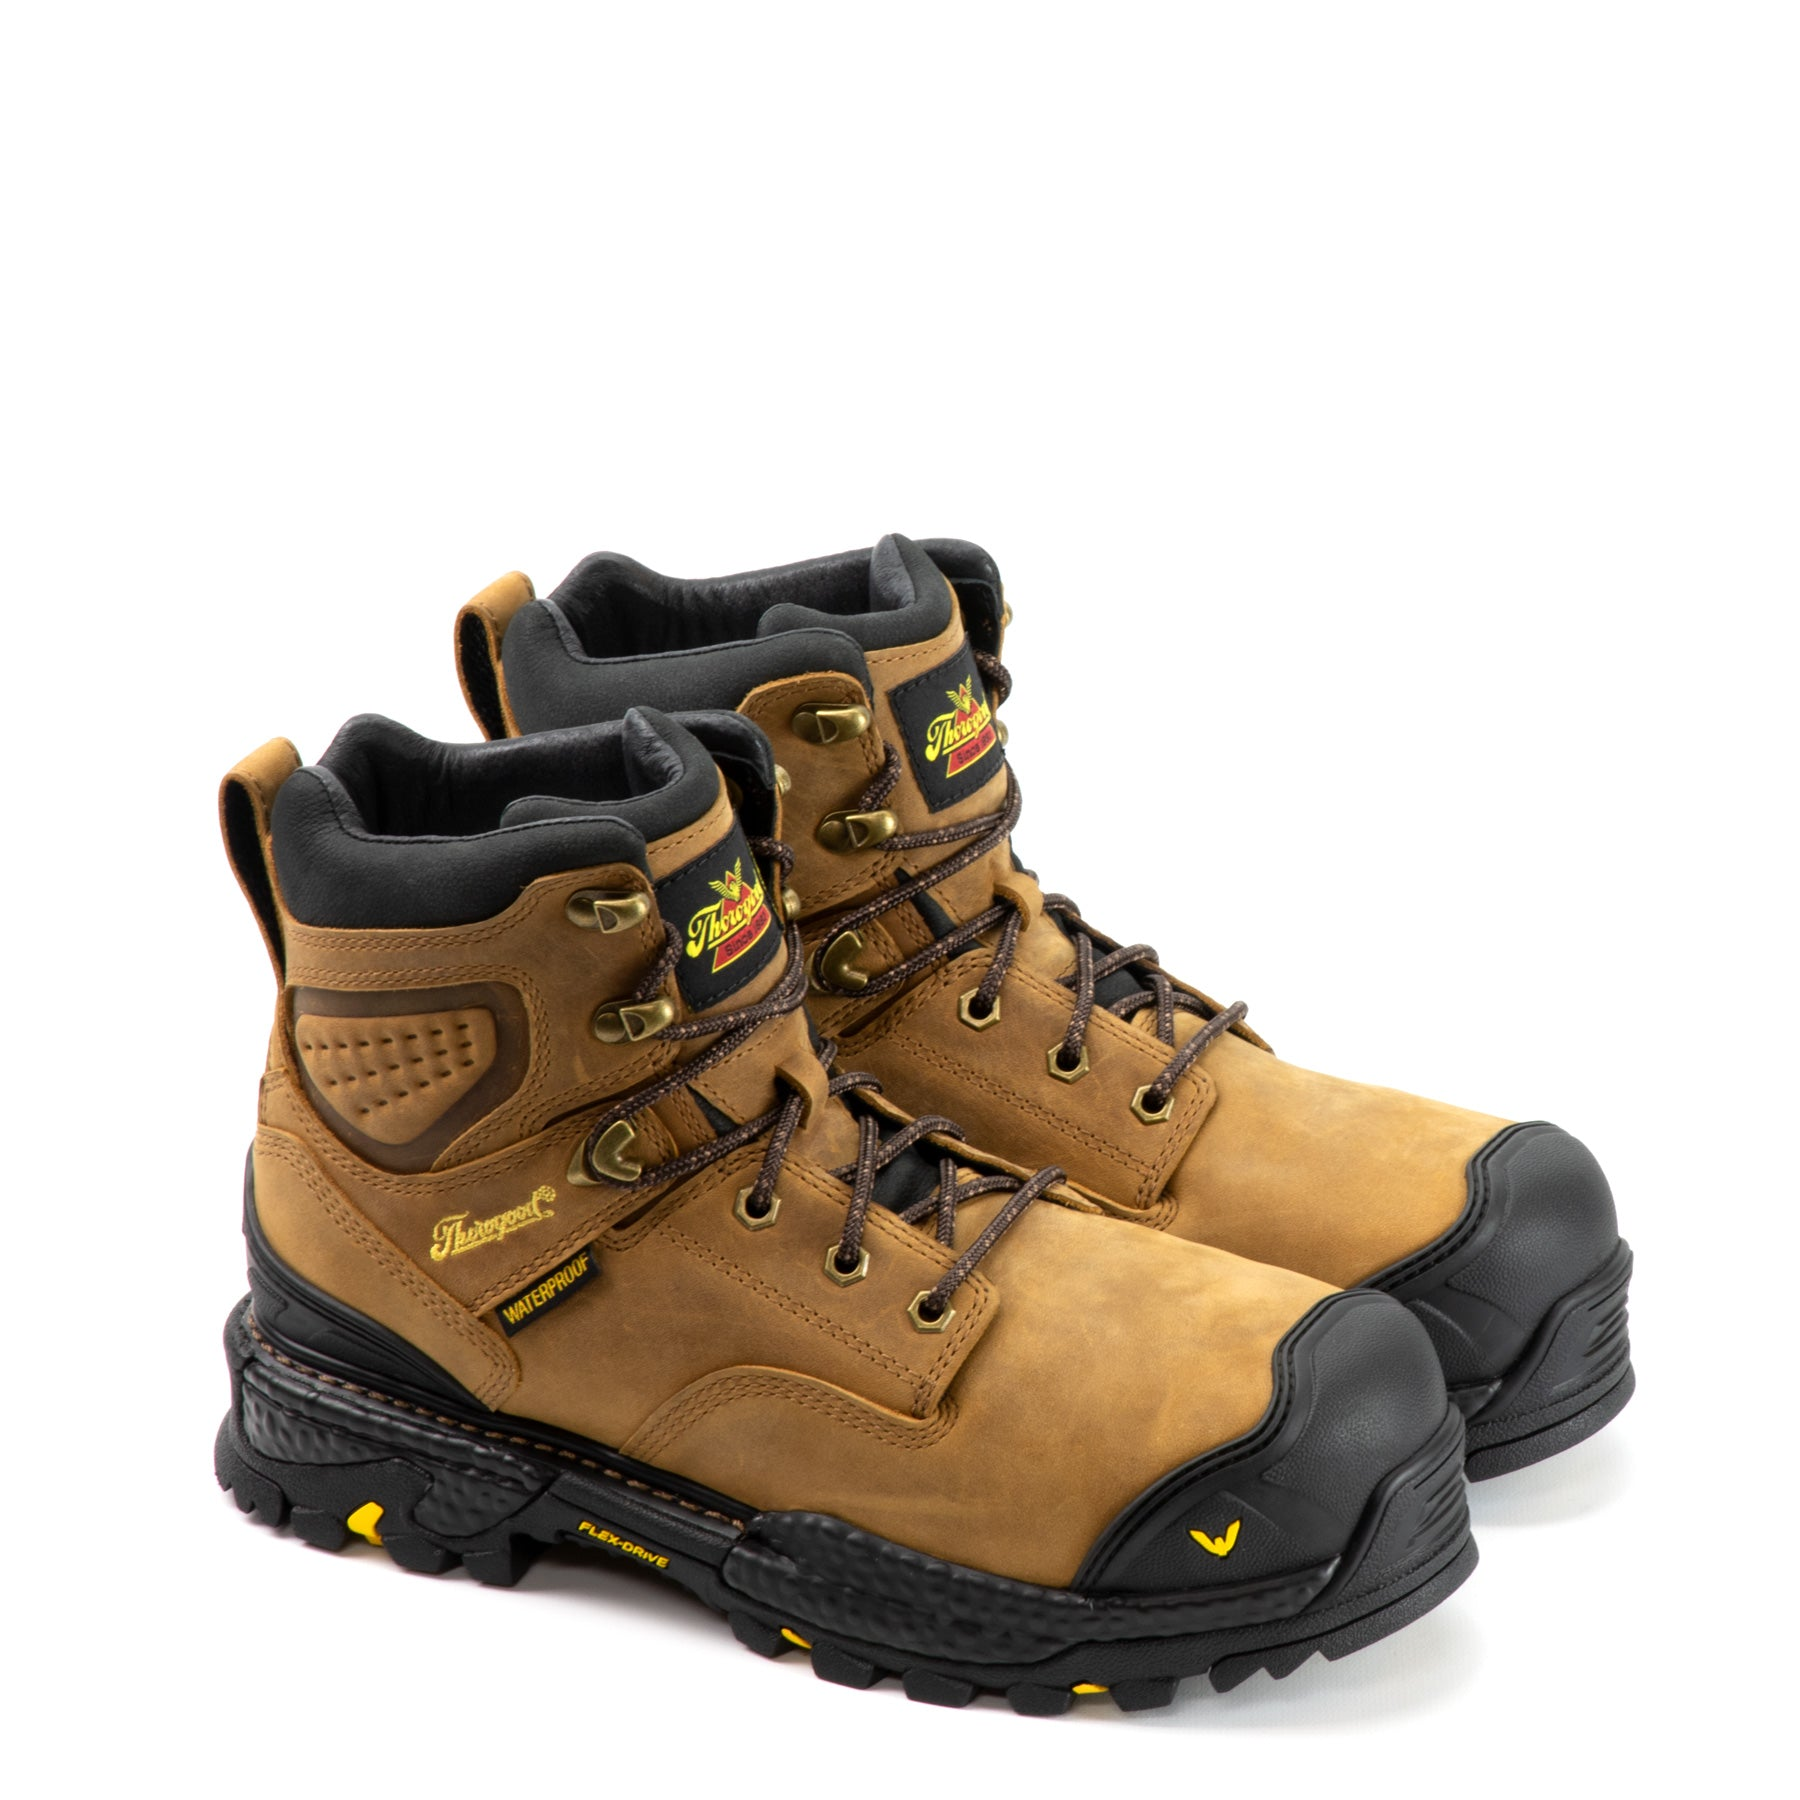 "Thorogood Men's Infinity FD Series 6"" Waterproof Composite Work Boot in Butterscotch from the side"